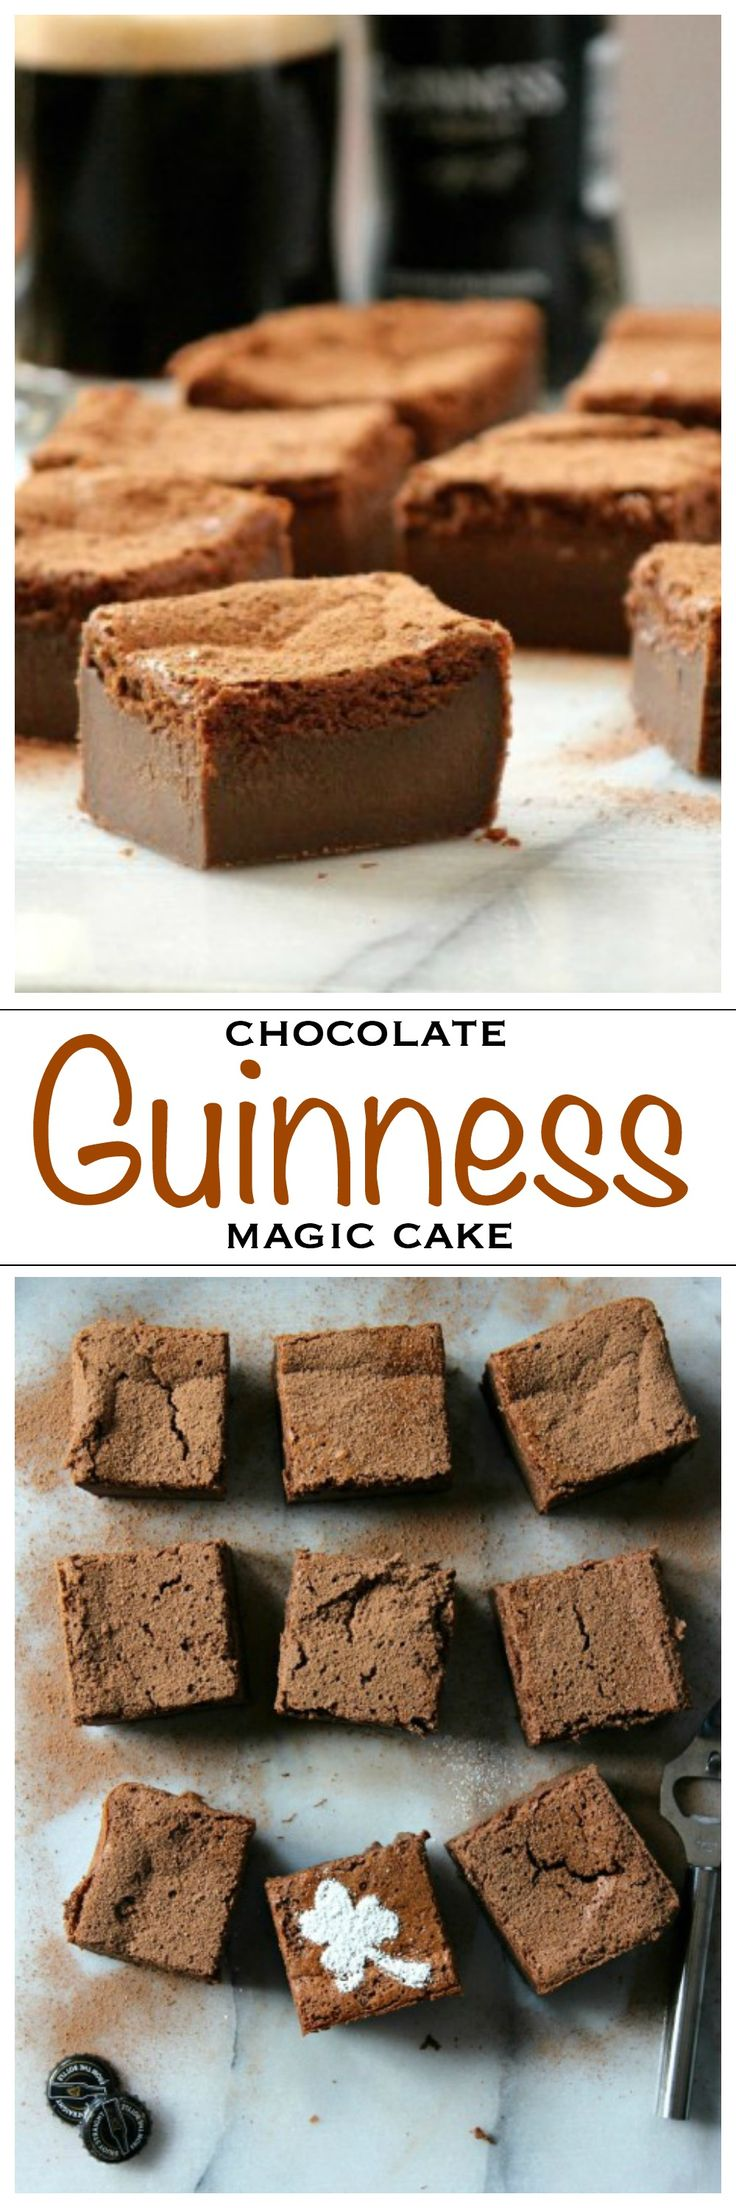 Chocolate magic cake with the famous Irish stout Guinness! Perfect for a St Patrick's Day party   Foodness Gracious